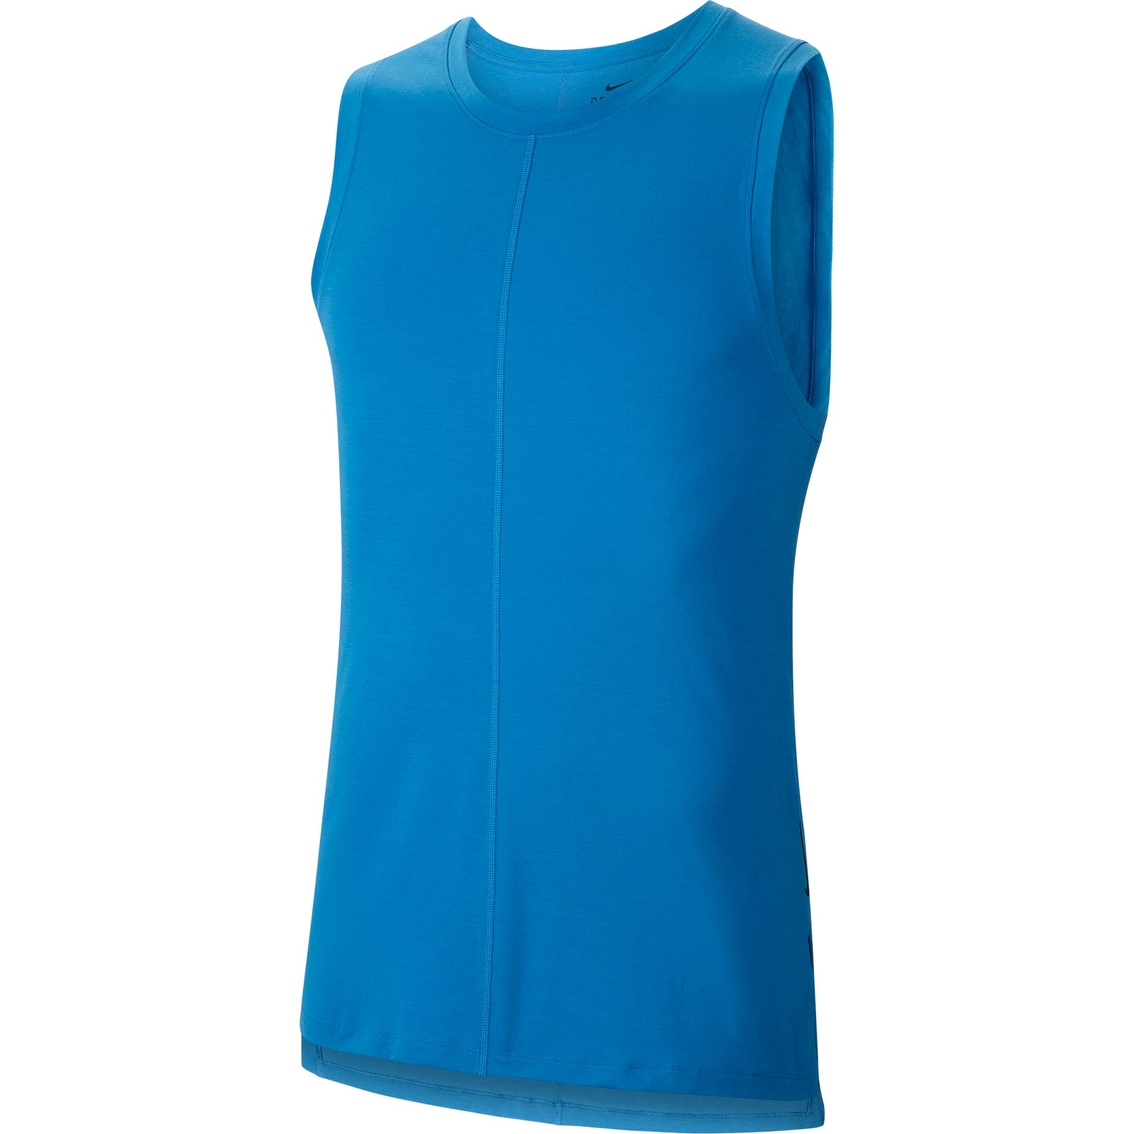 Nike Dry Yoga Tank Shirts Clothing Accessories Shop The Exchange